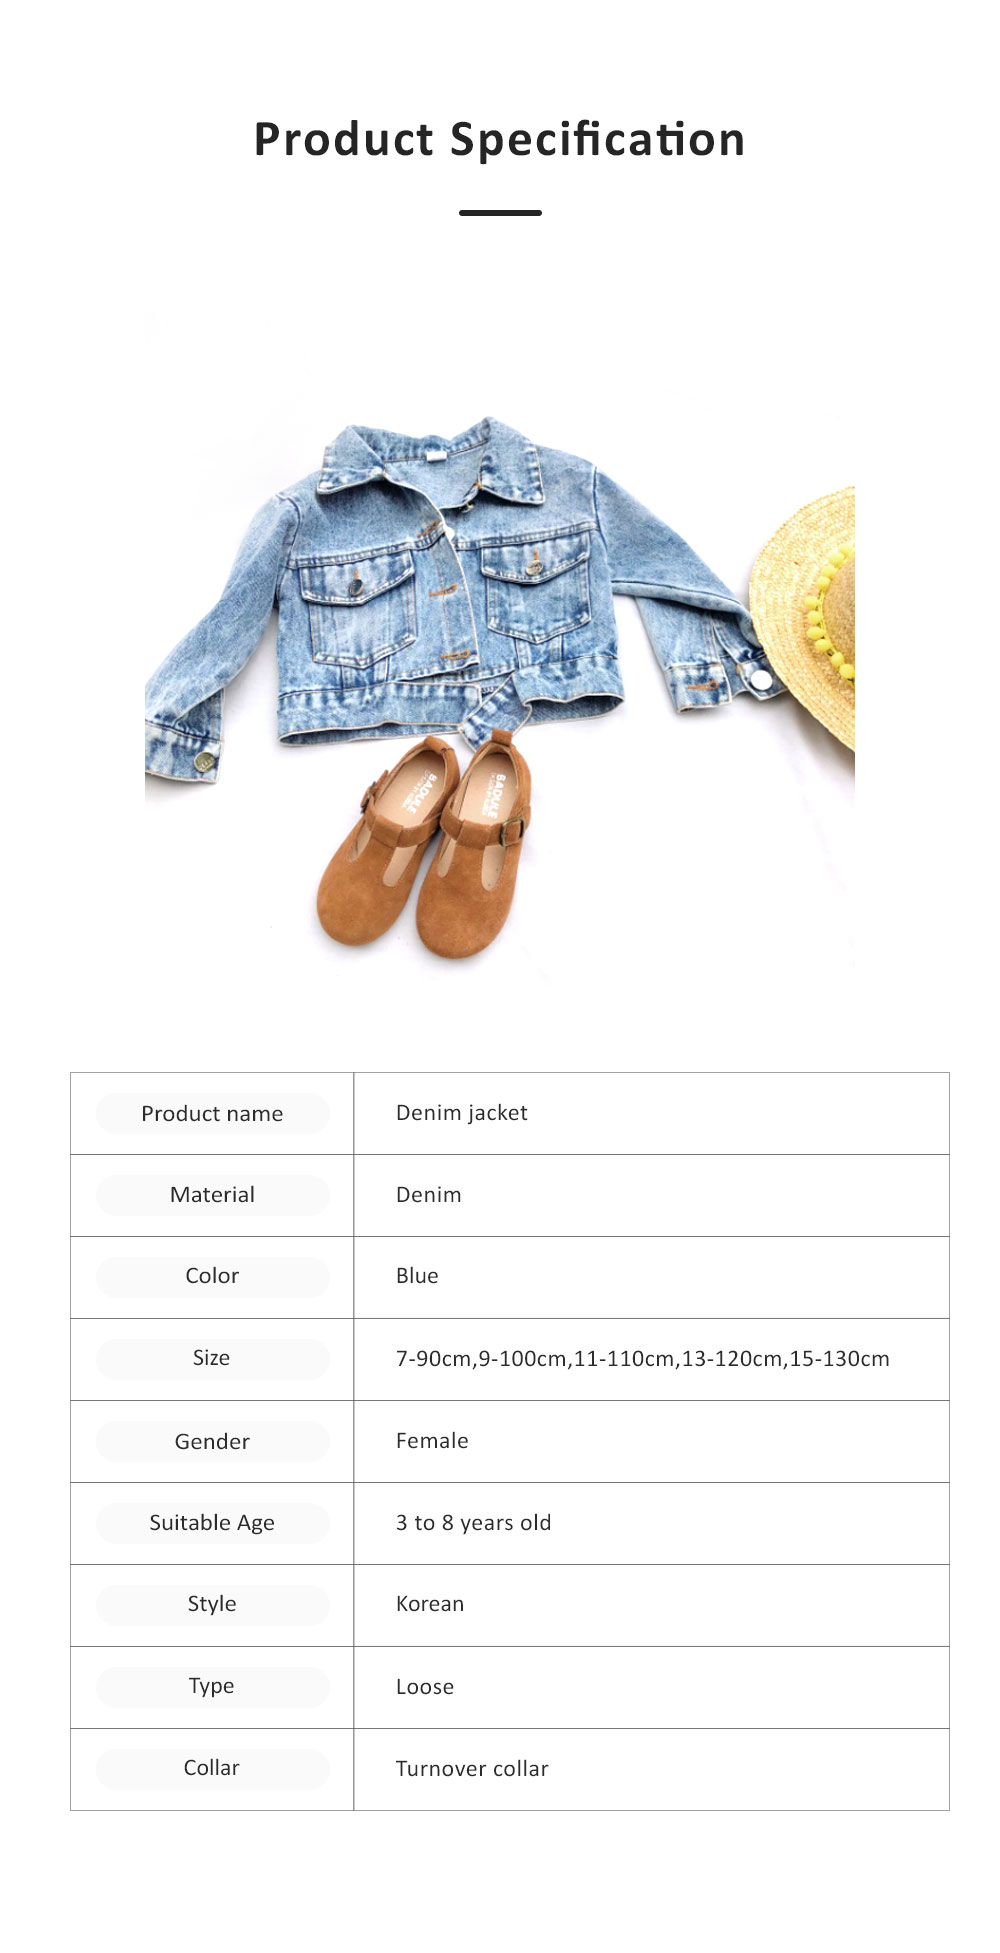 Classic style Denim Jacket Long Sleeve Clothes Fashionable Children Garment with Two Pockets for Girls 6